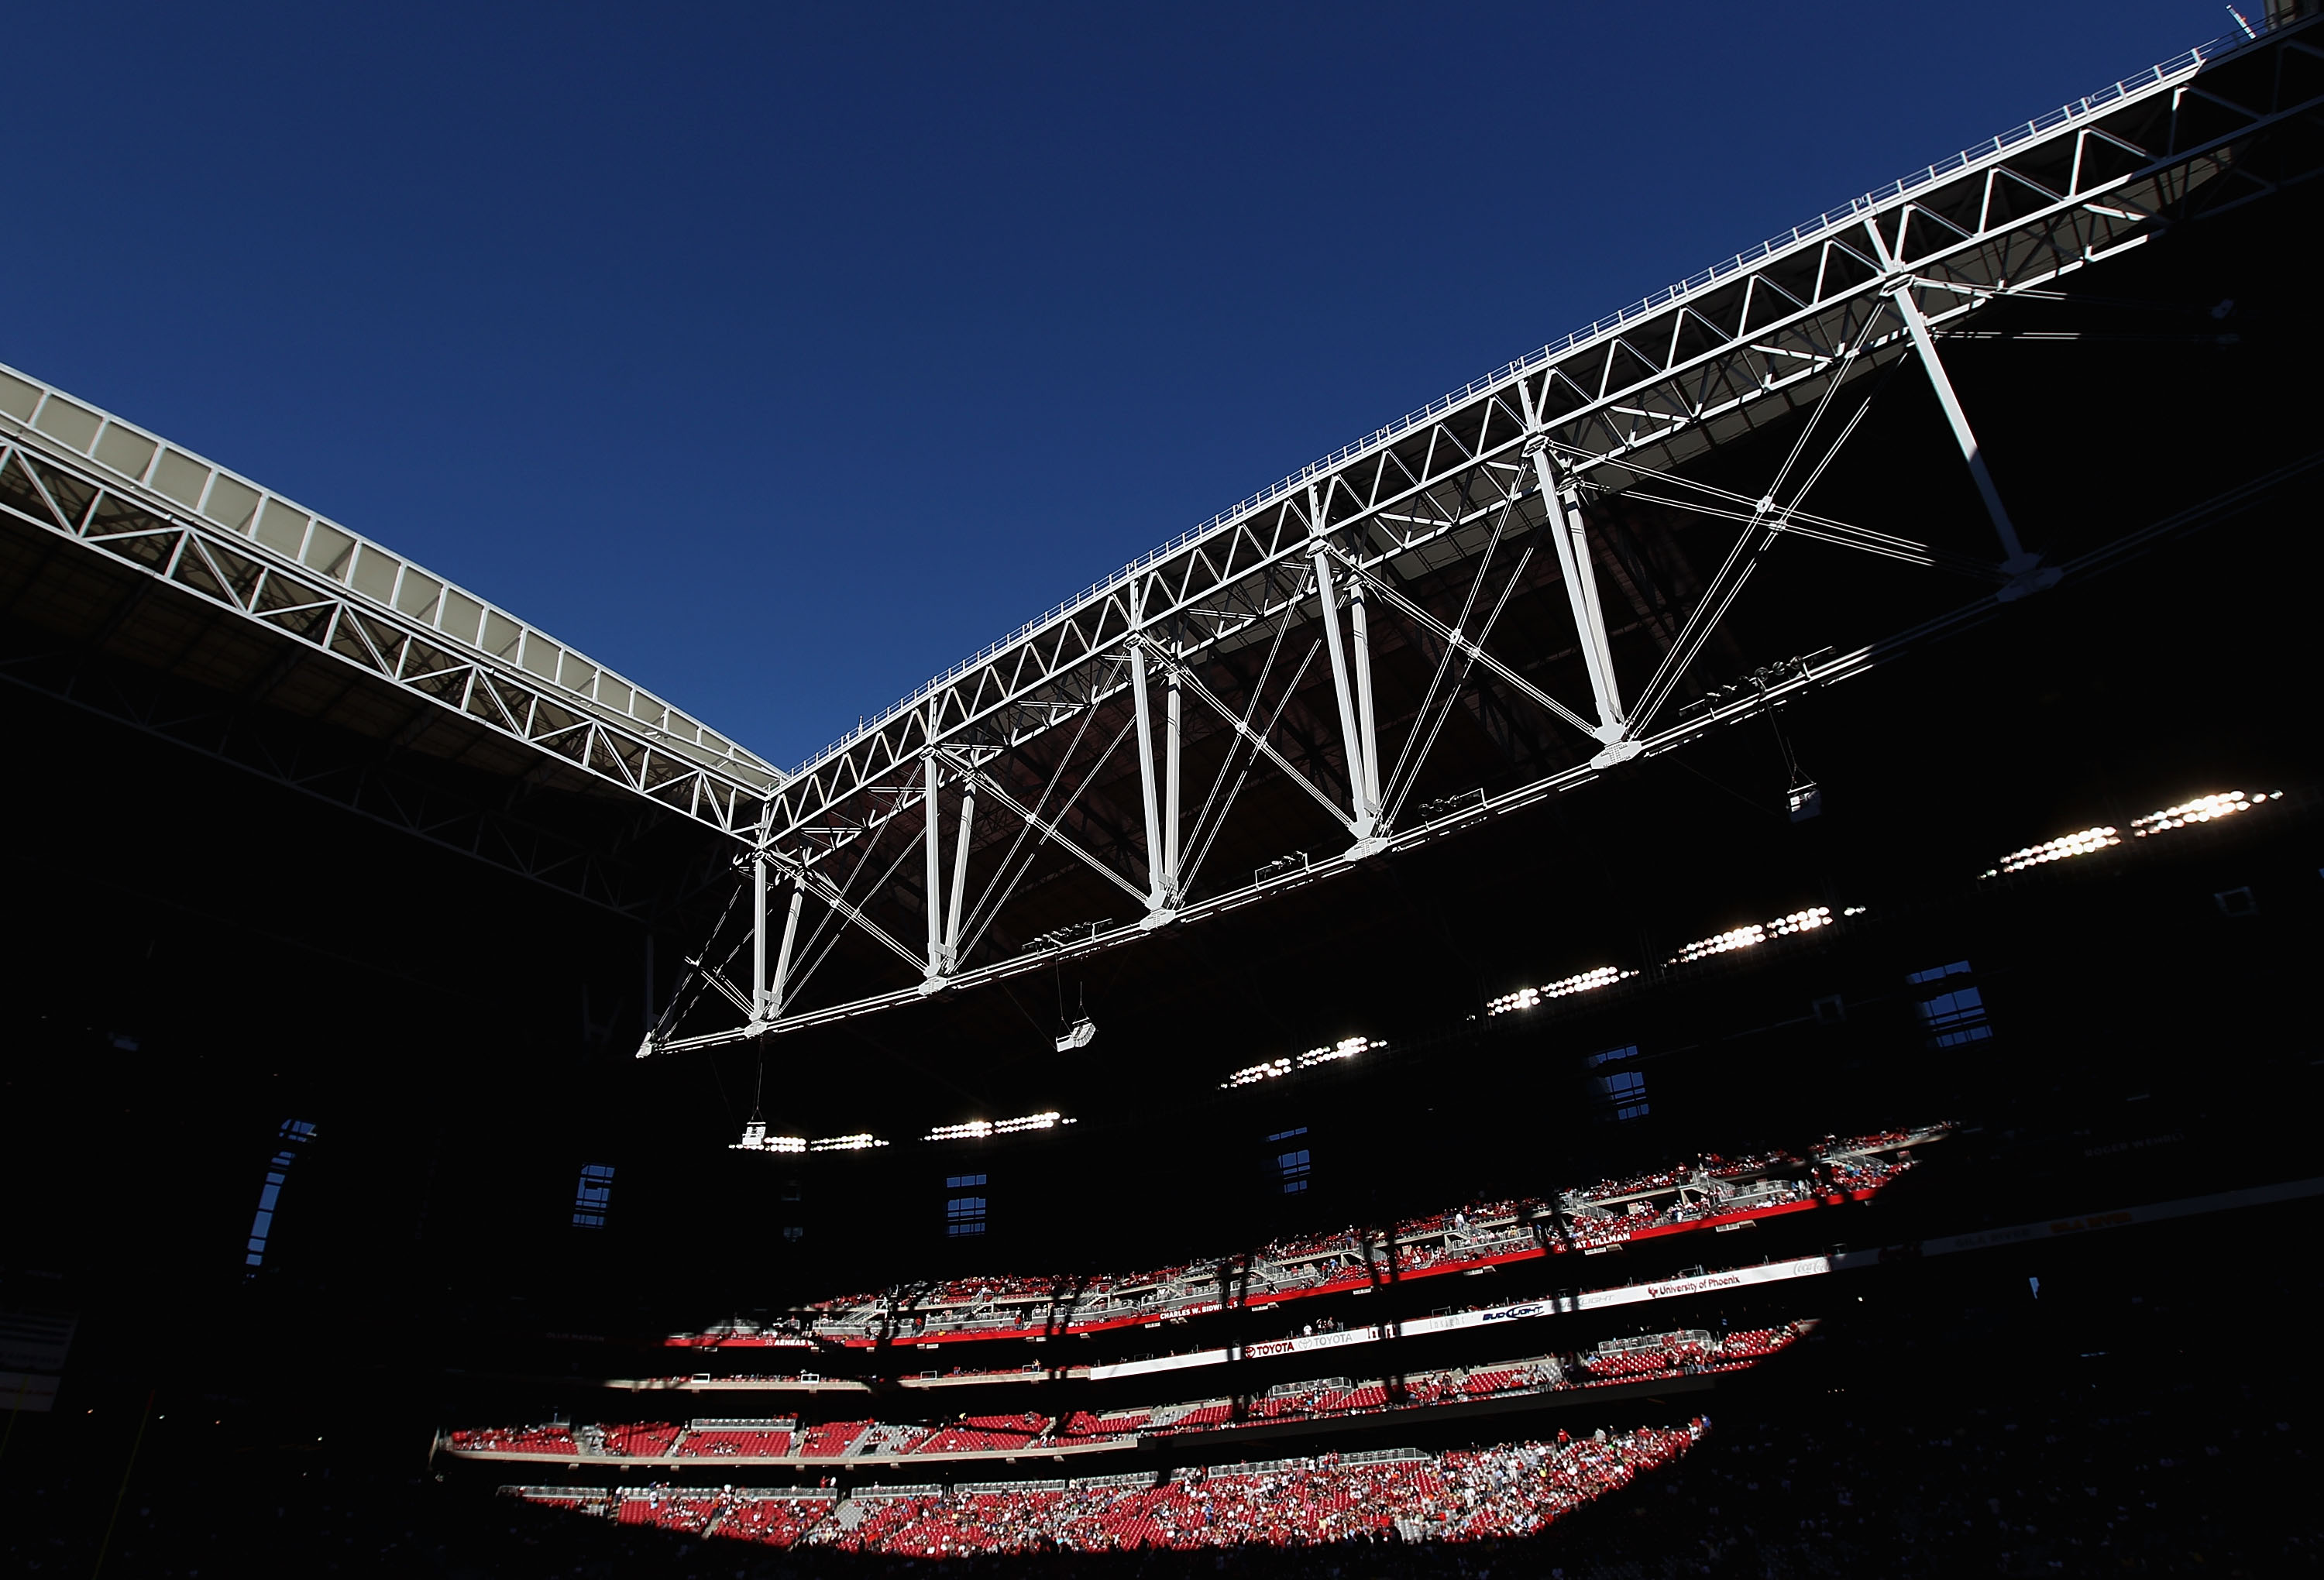 GLENDALE, AZ - DECEMBER 05:  General view of the open roof during the NFL game between the St. Louis Rams and the Arizona Cardinals at the University of Phoenix Stadium on December 5, 2010 in Glendale, Arizona. The Rams defeated the Cardinals 19-6.  (Phot